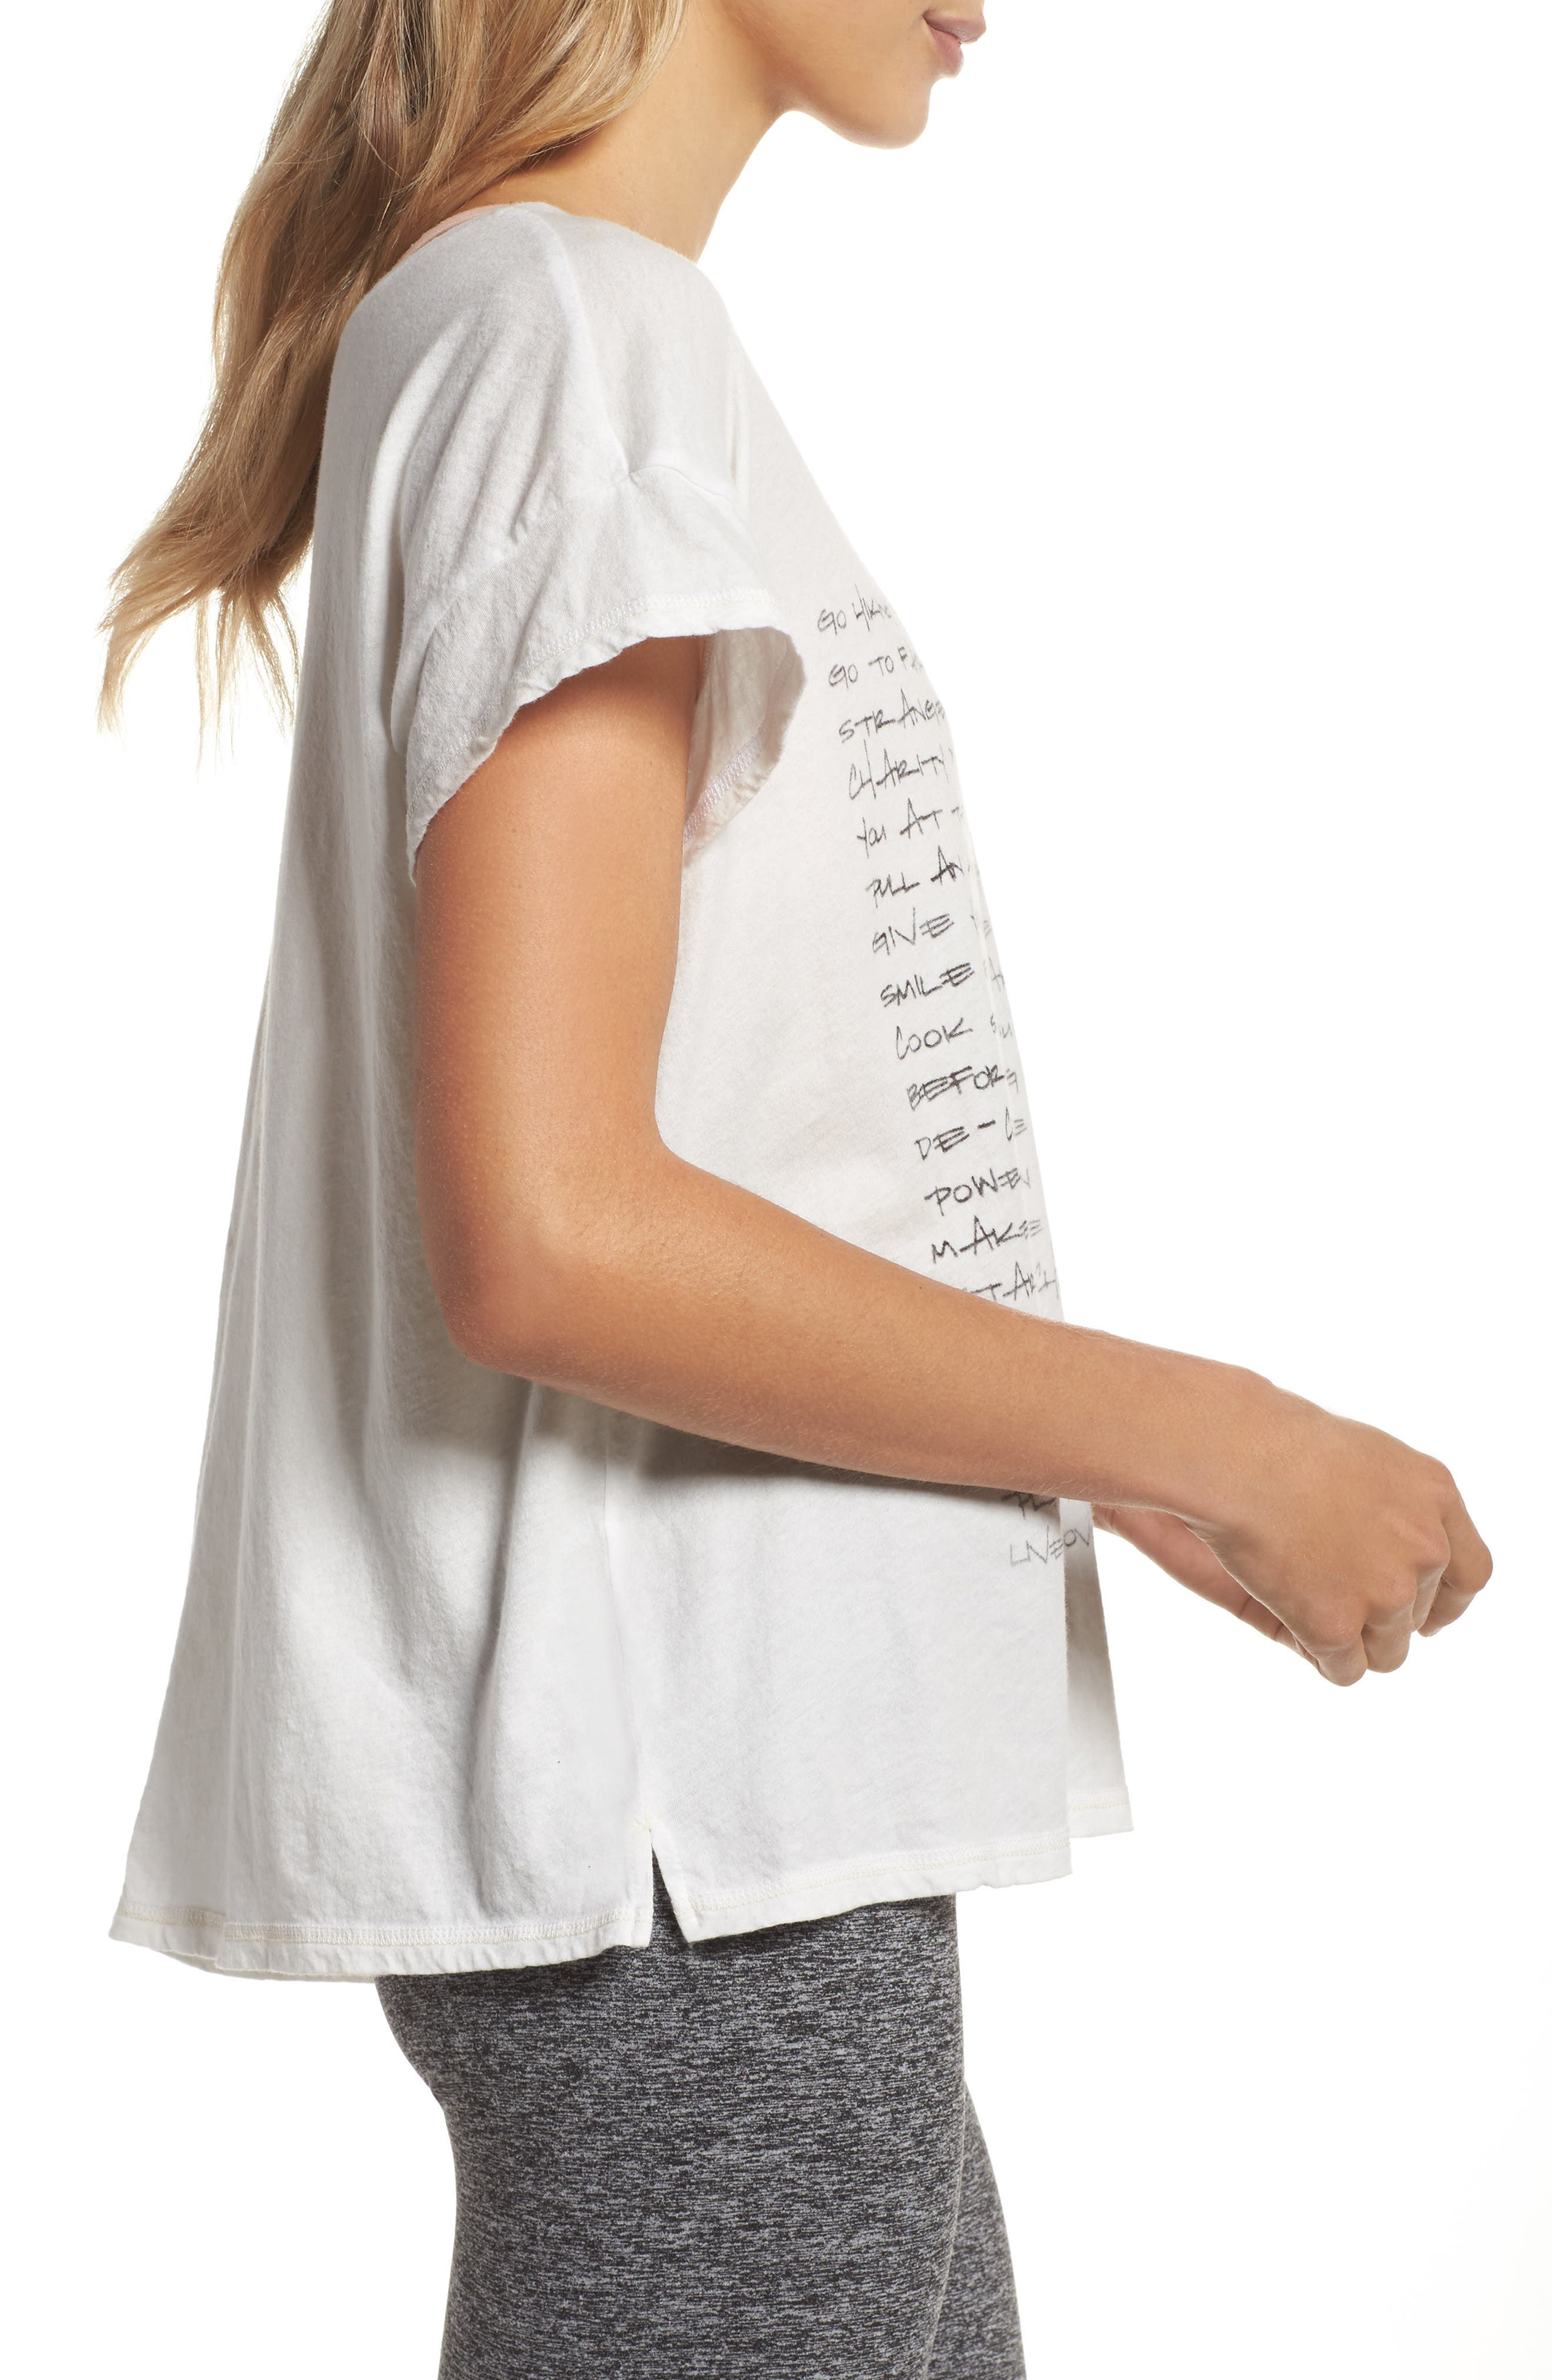 Claire To Do List Graphic Shirt,                             Alternate thumbnail 3, color,                             100